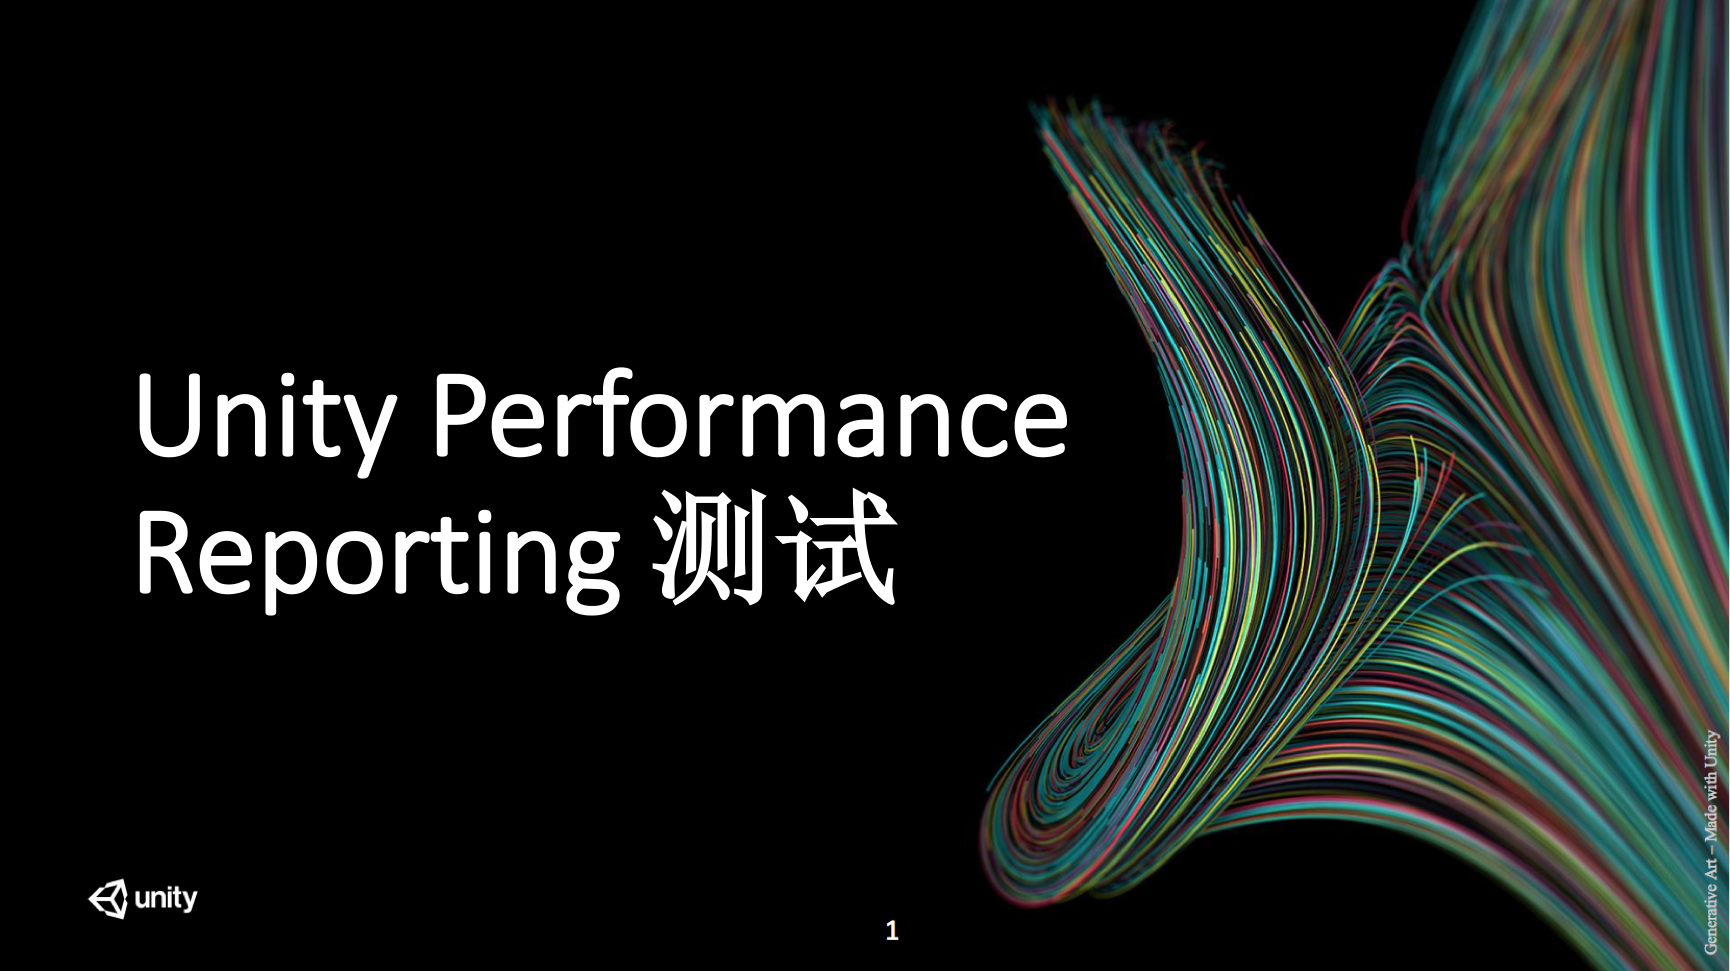 Unity Performance Reporting 测试